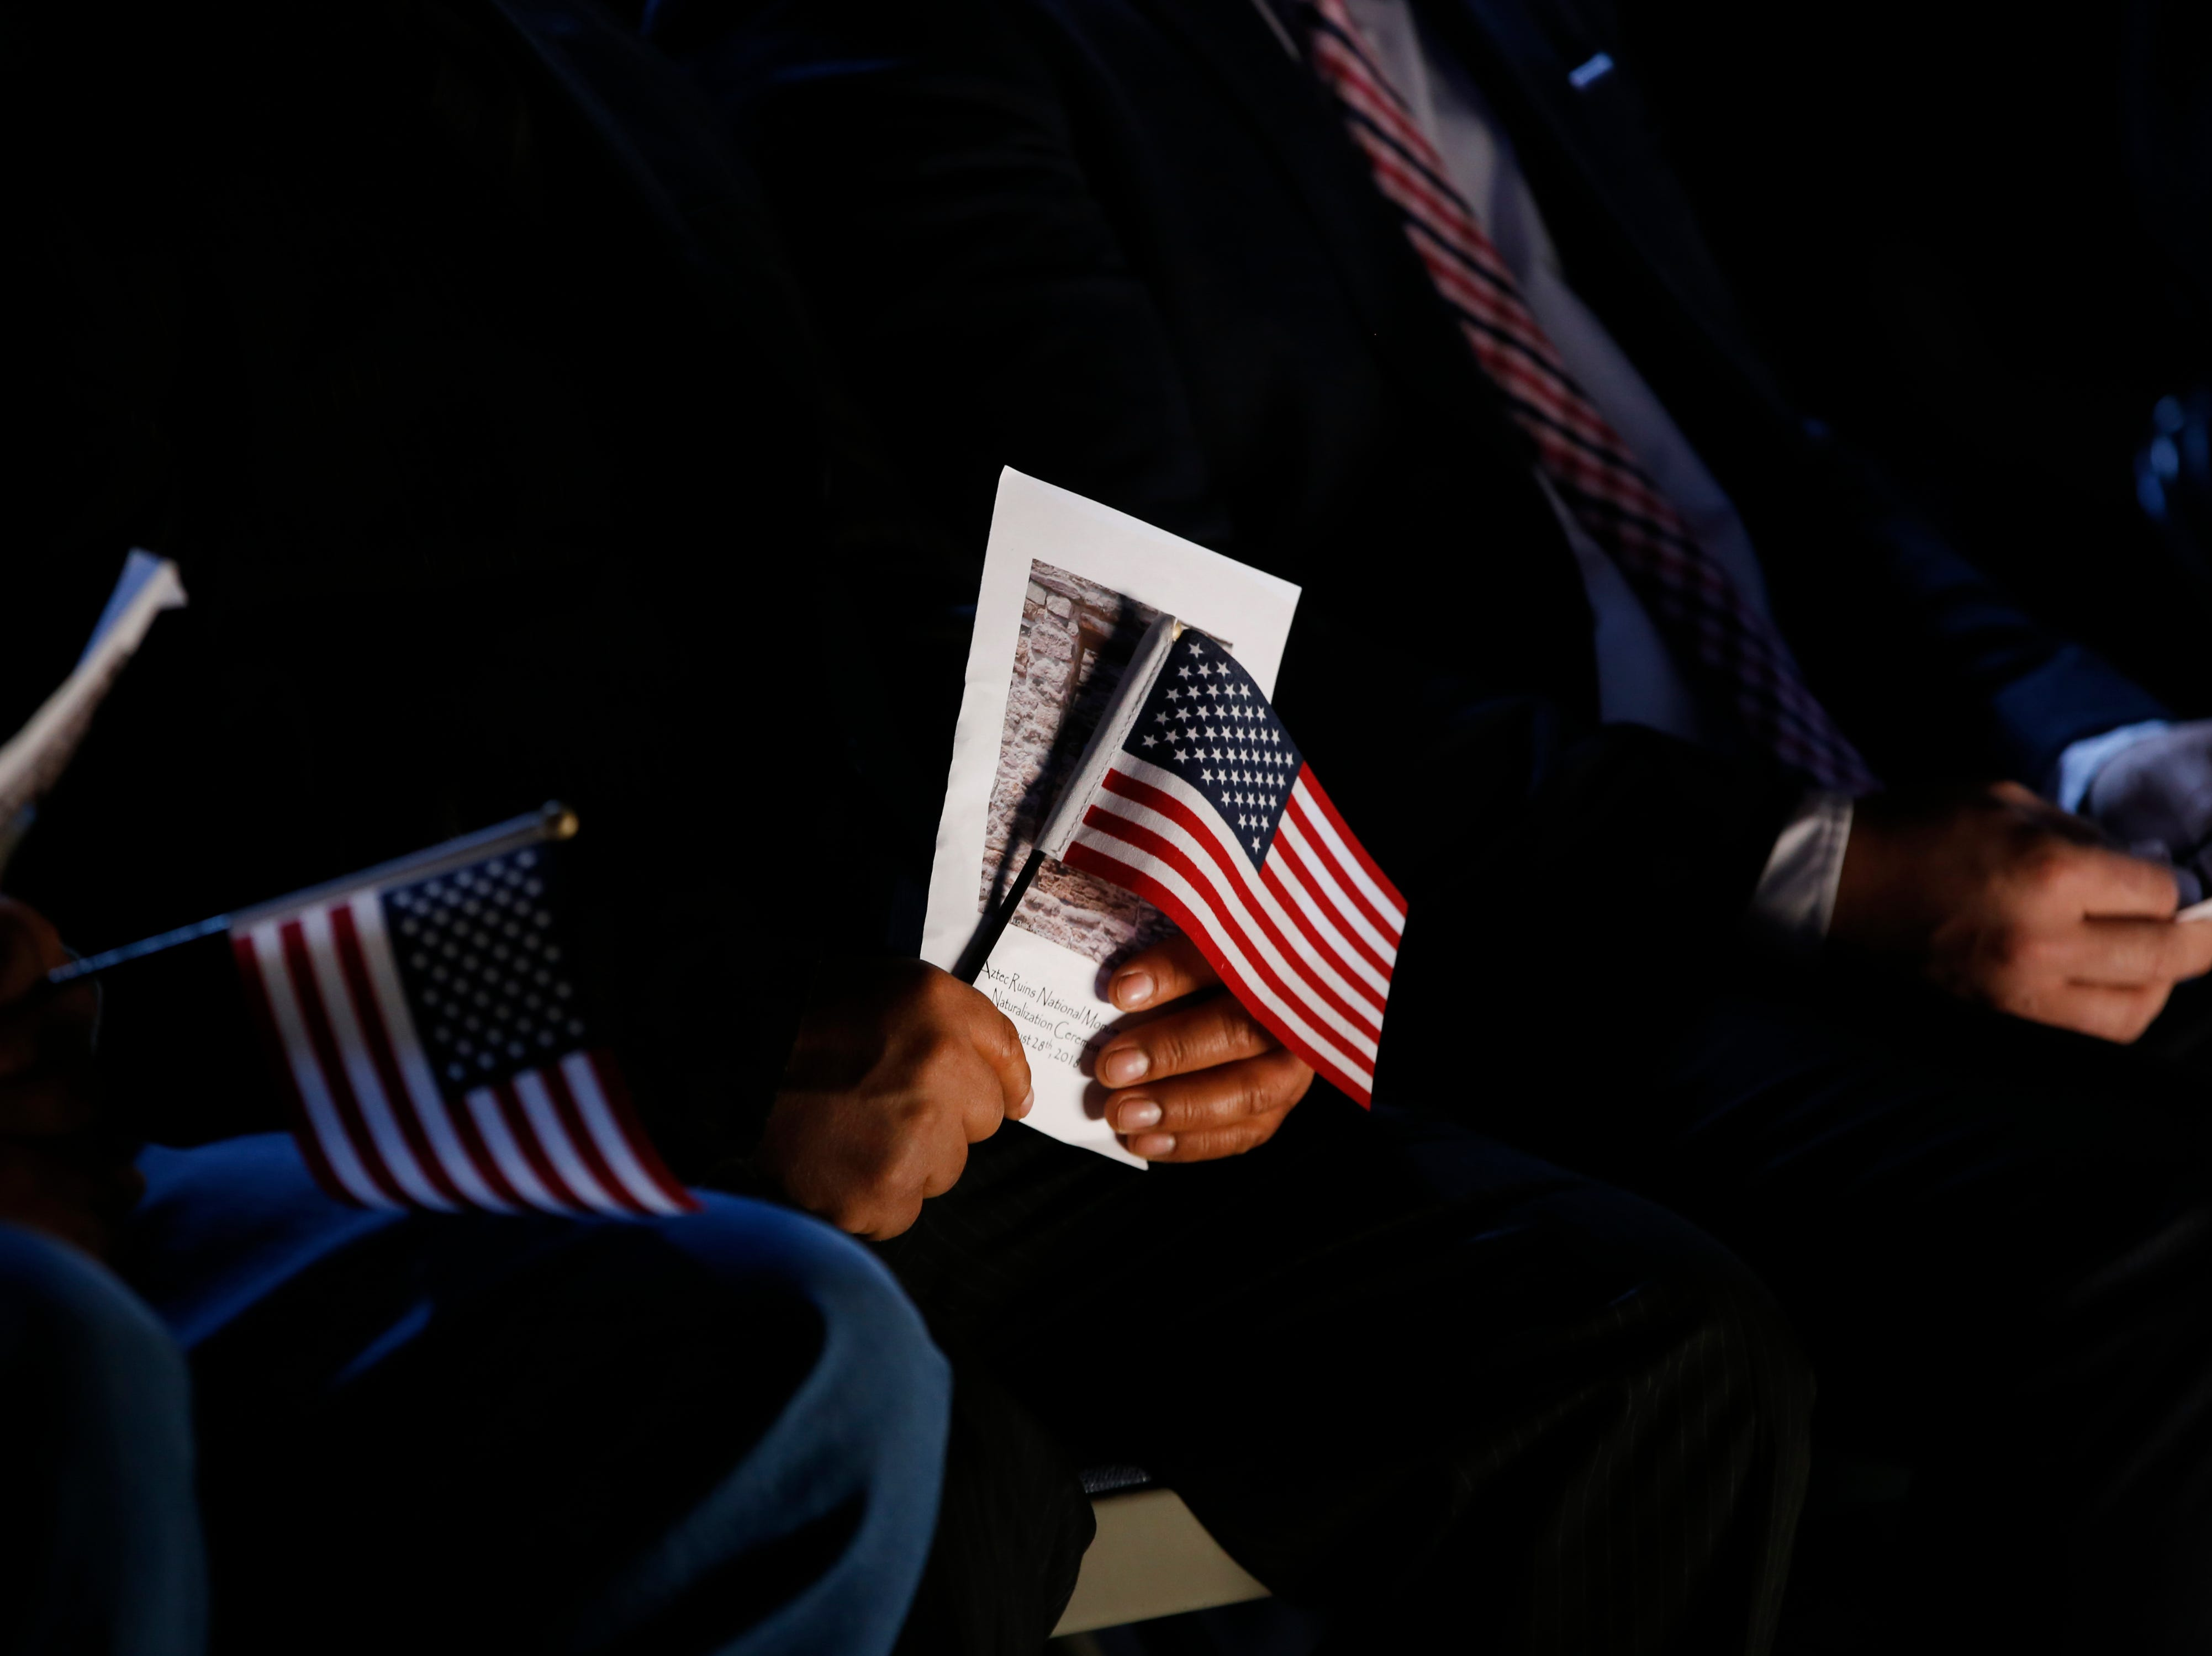 Eight individuals from three foreign countries, Mexico, Canada and the Philippines took part in a naturalization ceremony on Friday, Sept. 28, 2018 at the Aztec Ruins National Monument.